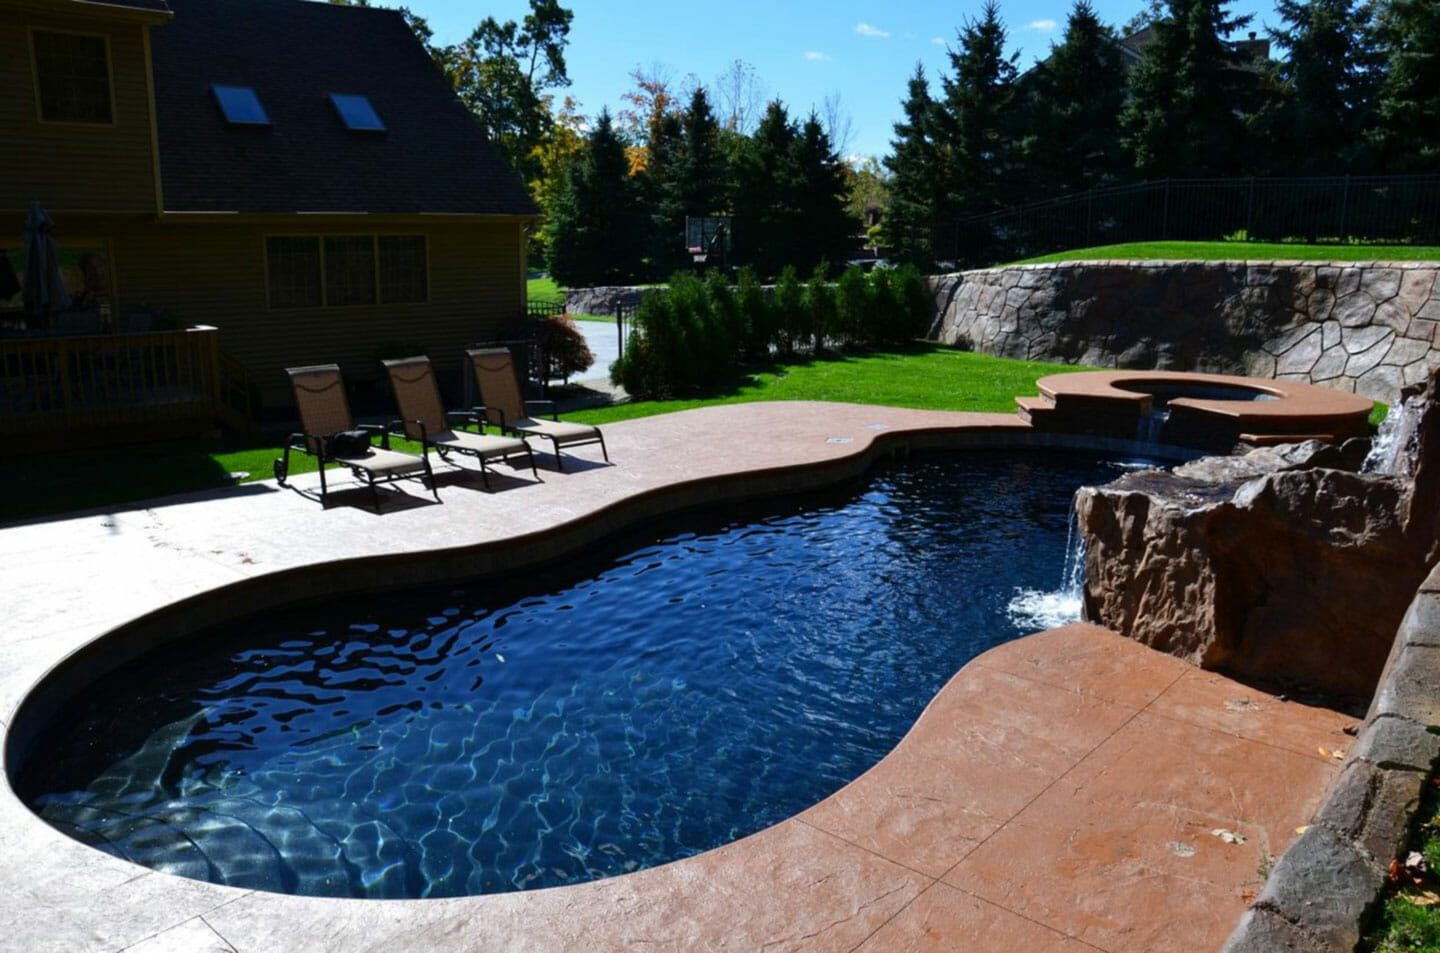 Carribean Fibreglass Pool with coping and side pool by Leisure Pools